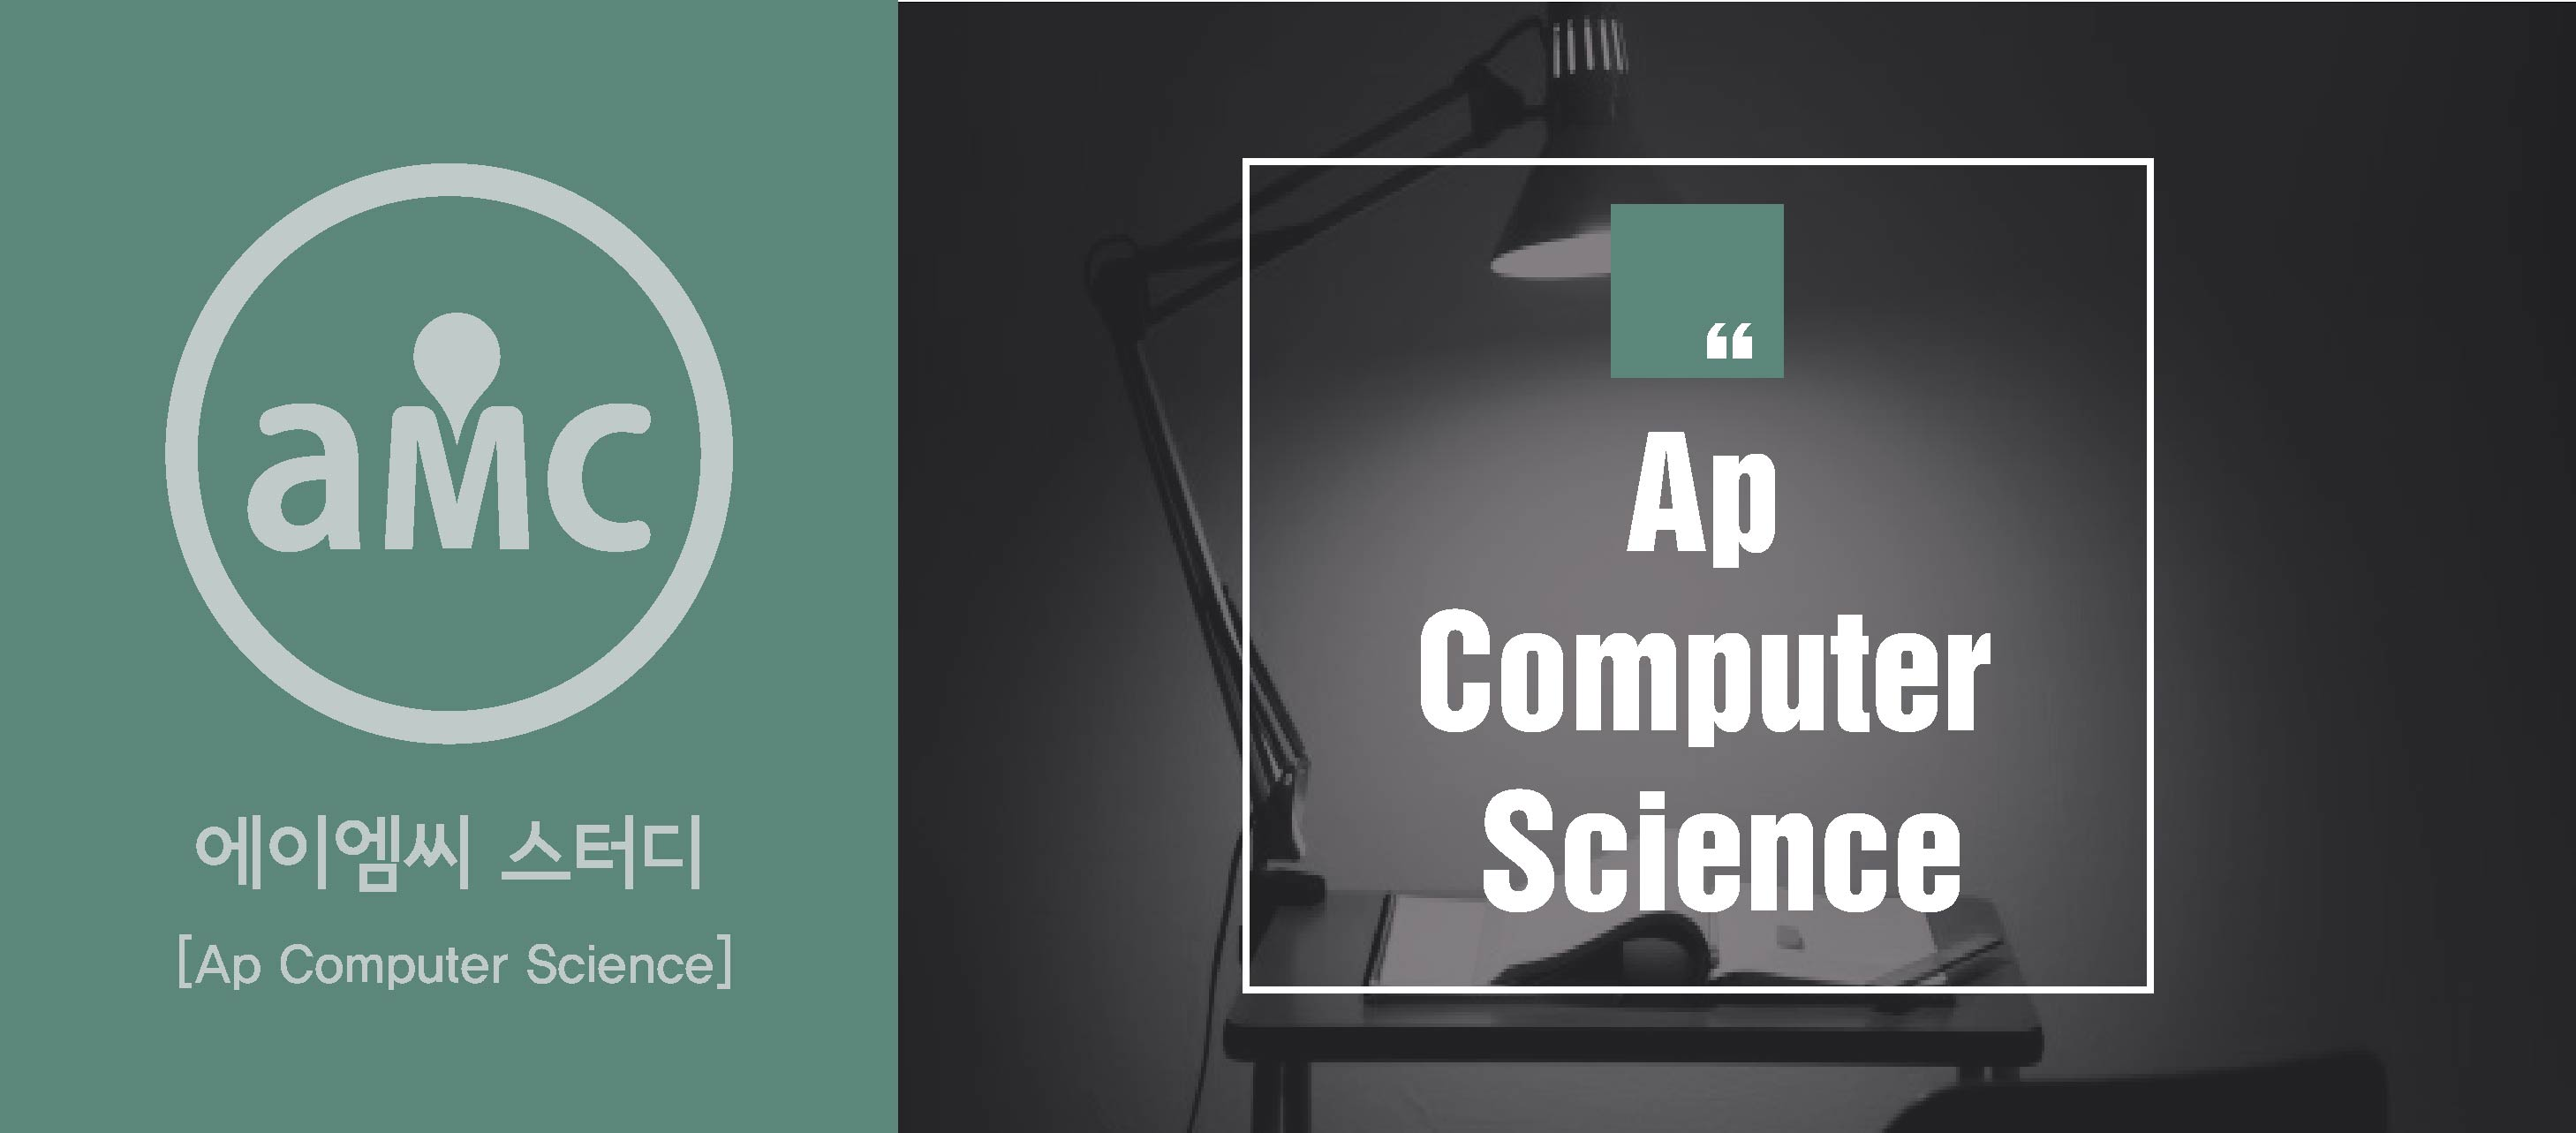 ap computer science classes Ap computer science: java programming a comprehensive online computer science course leading to the advanced placement computer science a exam this self-contained course features an online java compiler, interactive exercises and coding activities, extended lab assignments, and tests.